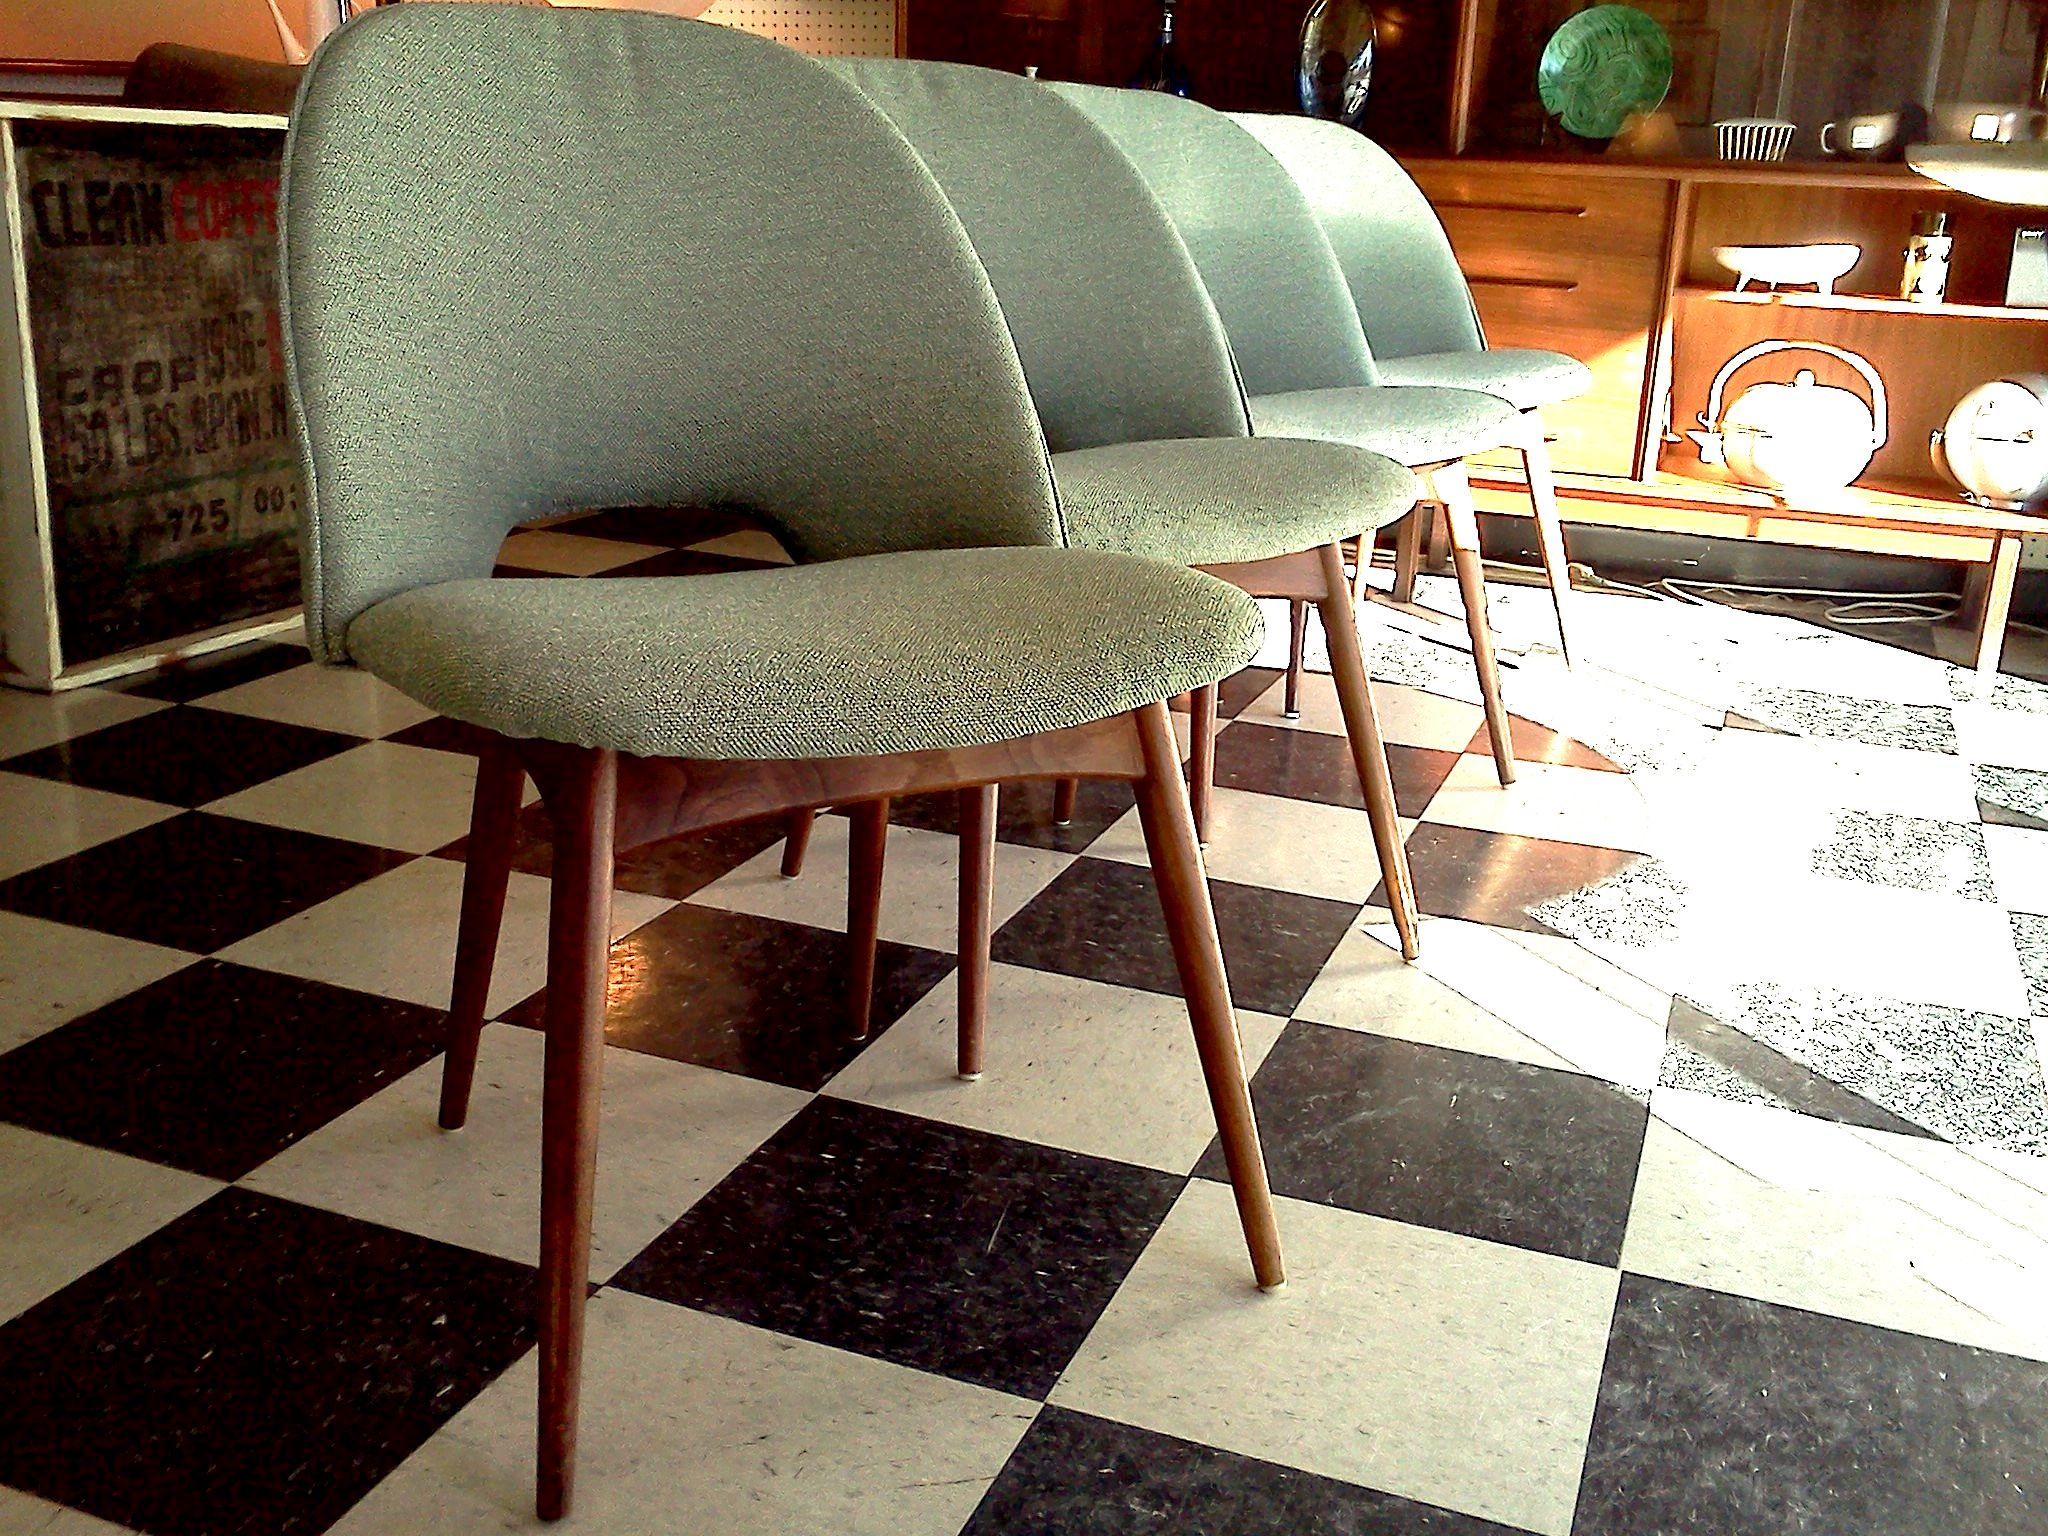 ^ 1000+ images about midcentury modern furniture on Pinterest ...